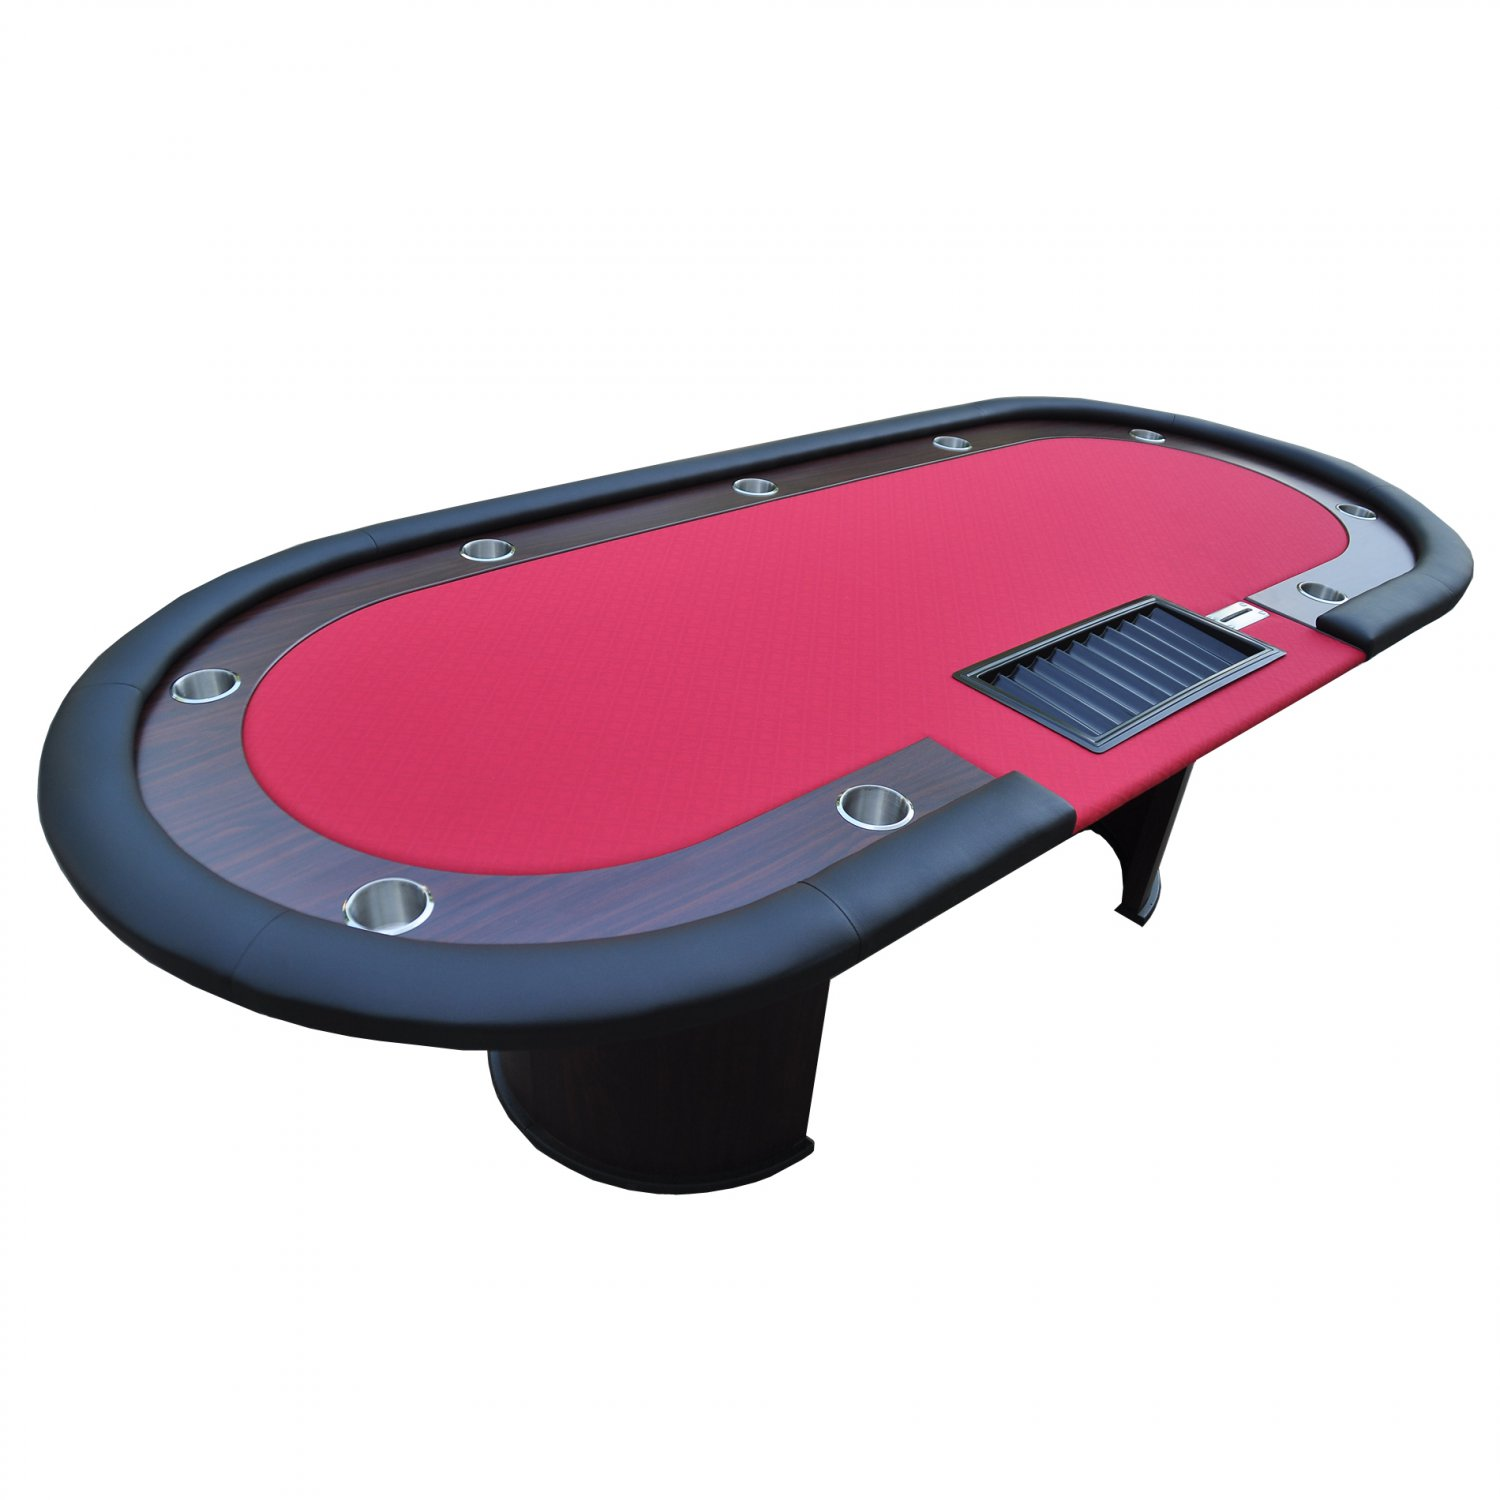 "96"" 10 Players Texas Hold'em Wooden Legs Poker Table With Drop Box Red Ver.2(Ship US Only)#16367-R#"